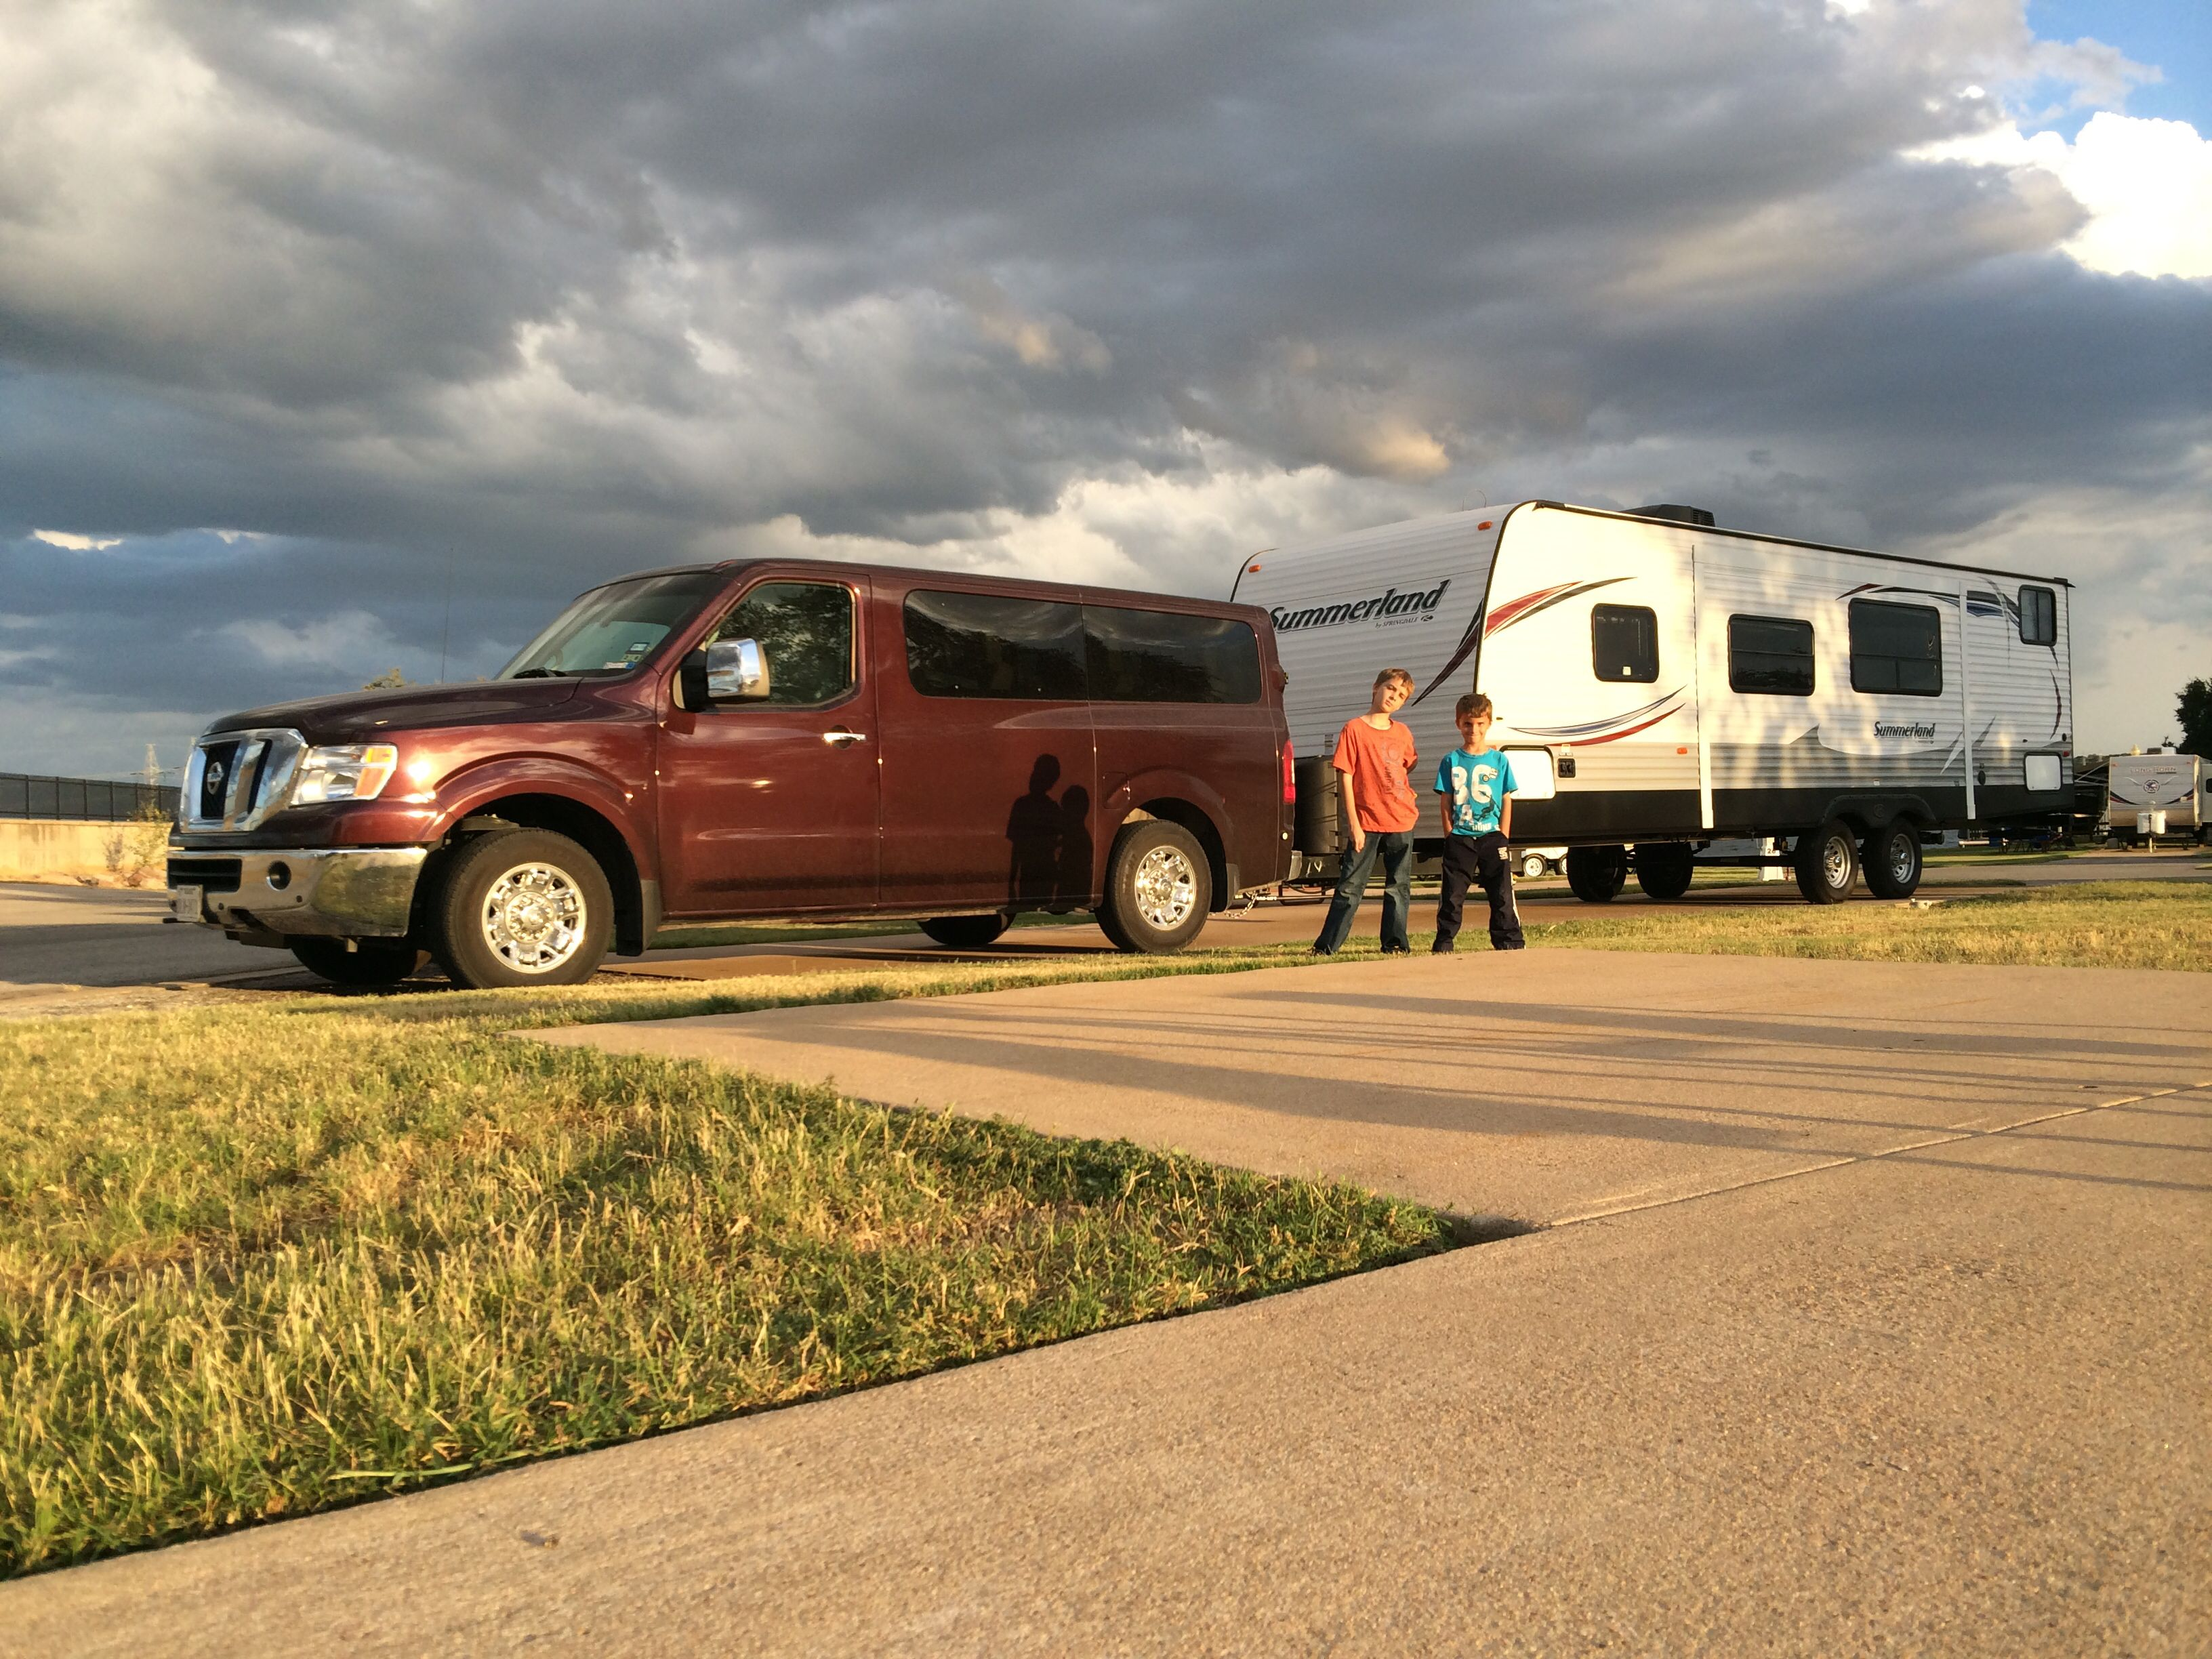 The Nissan Nv Passenger 3500 Sl Tows Our Travel Trailer All Over